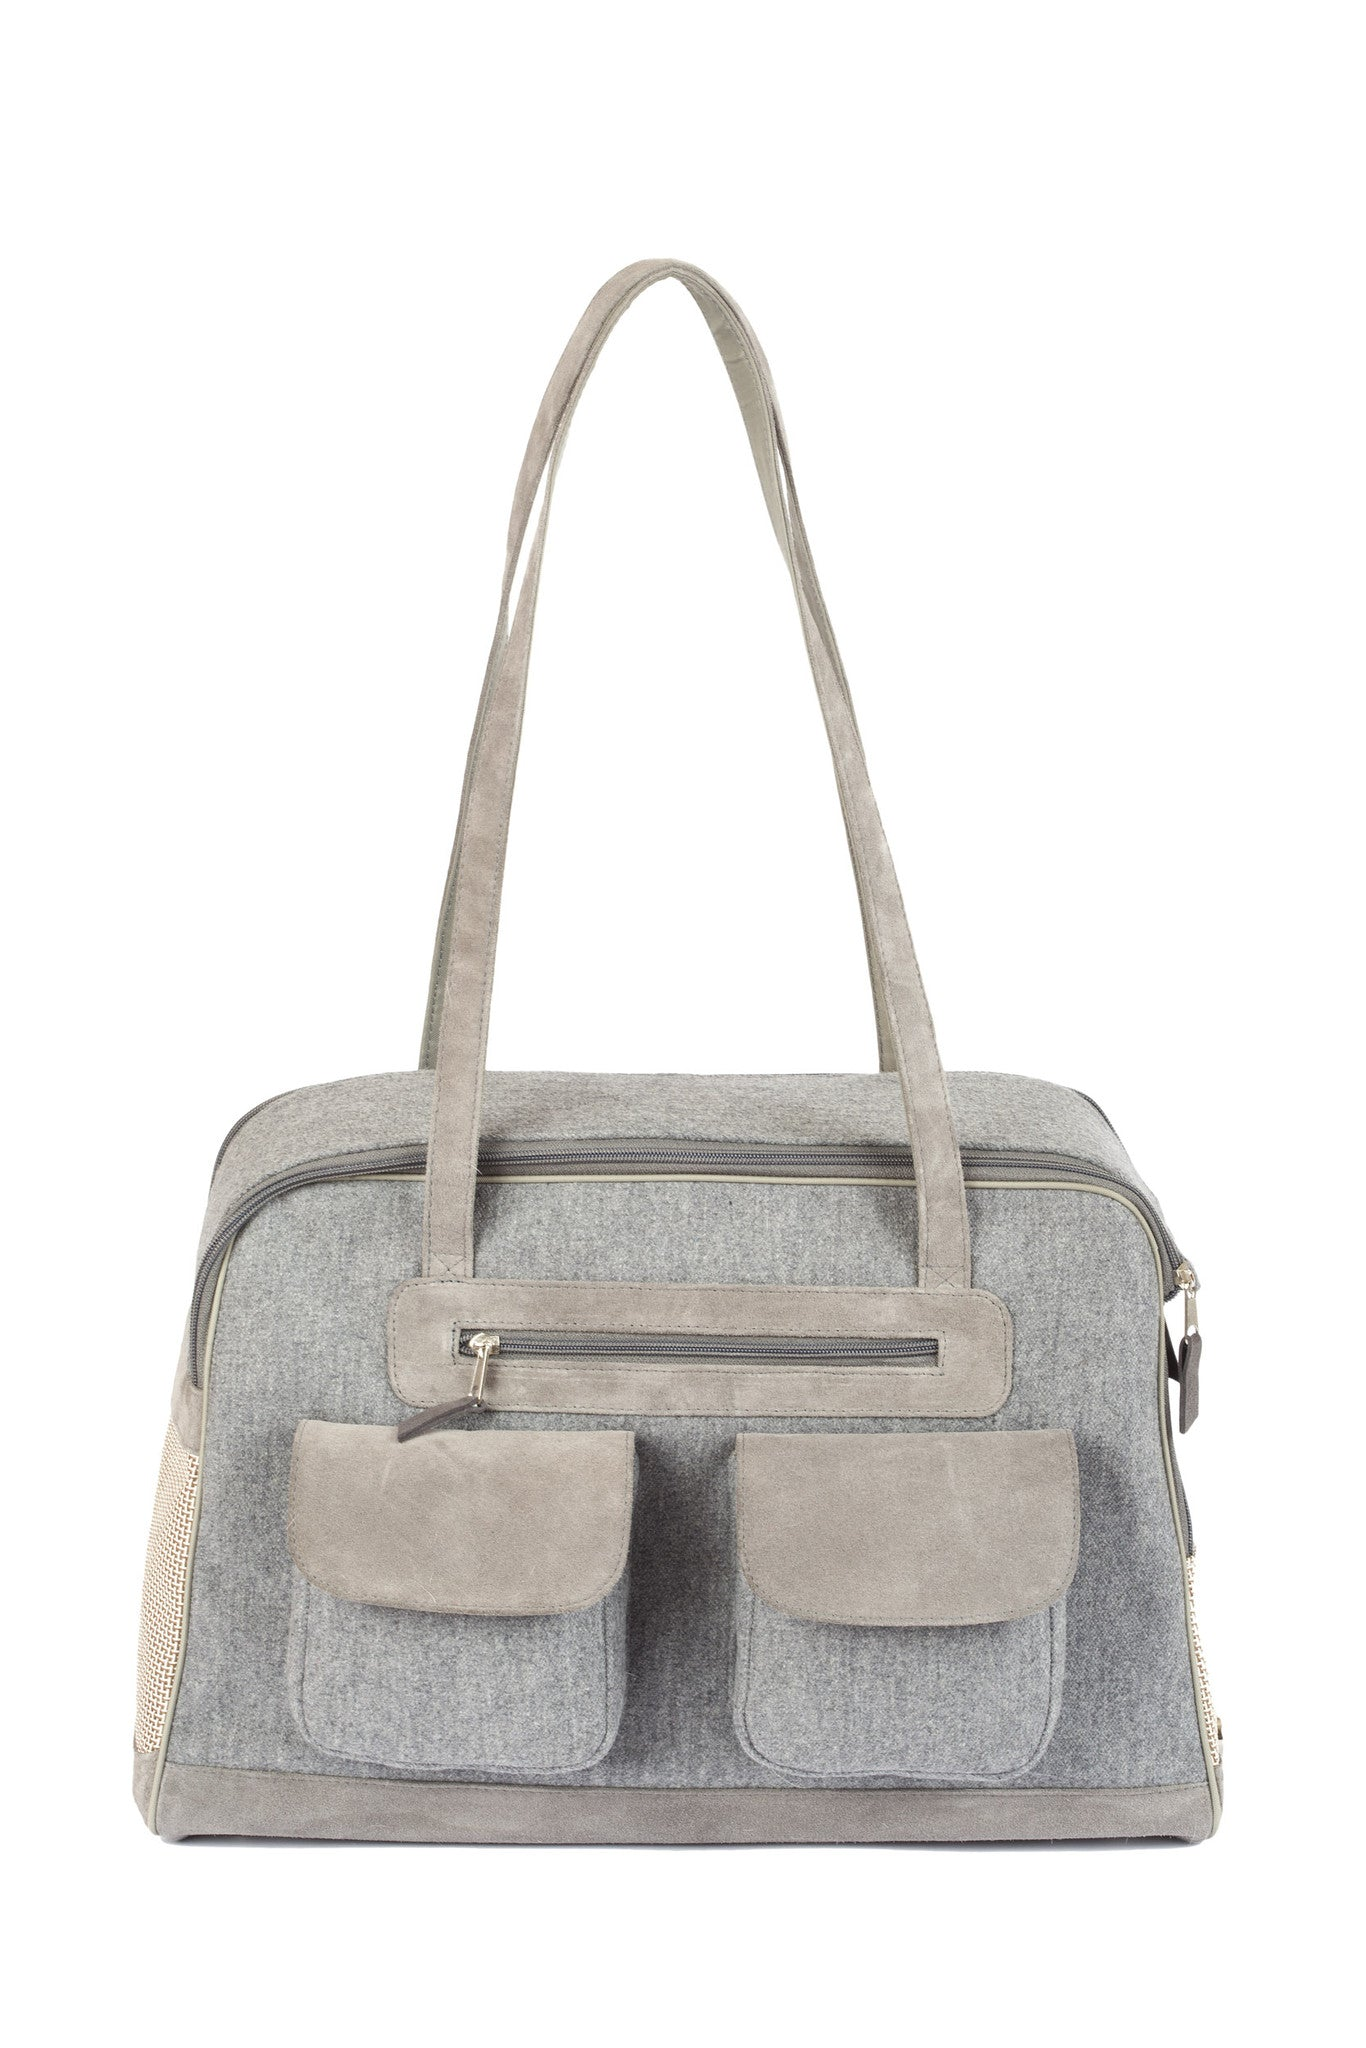 Dog Carrier - Wool/Cashmere Blend w/ Leather Straps - 4 Color Options